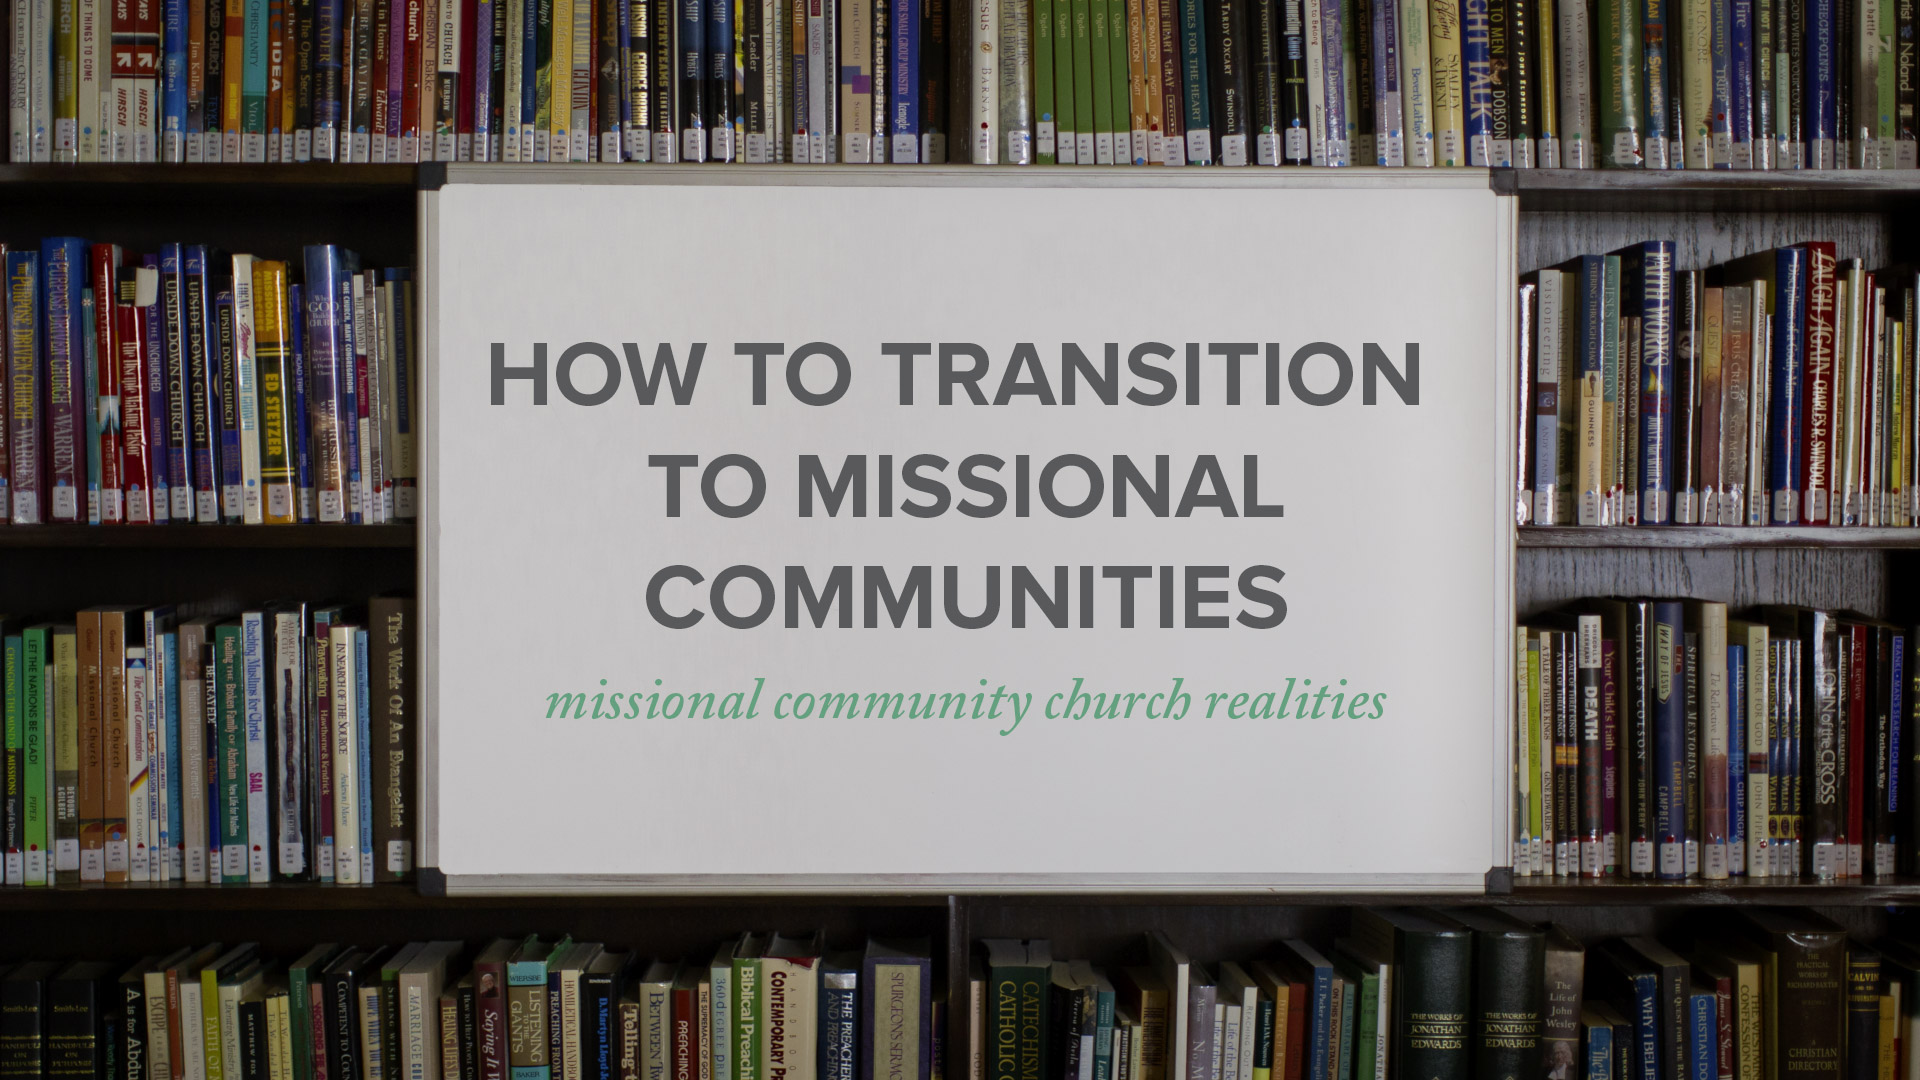 How to Transition to Missional Communities